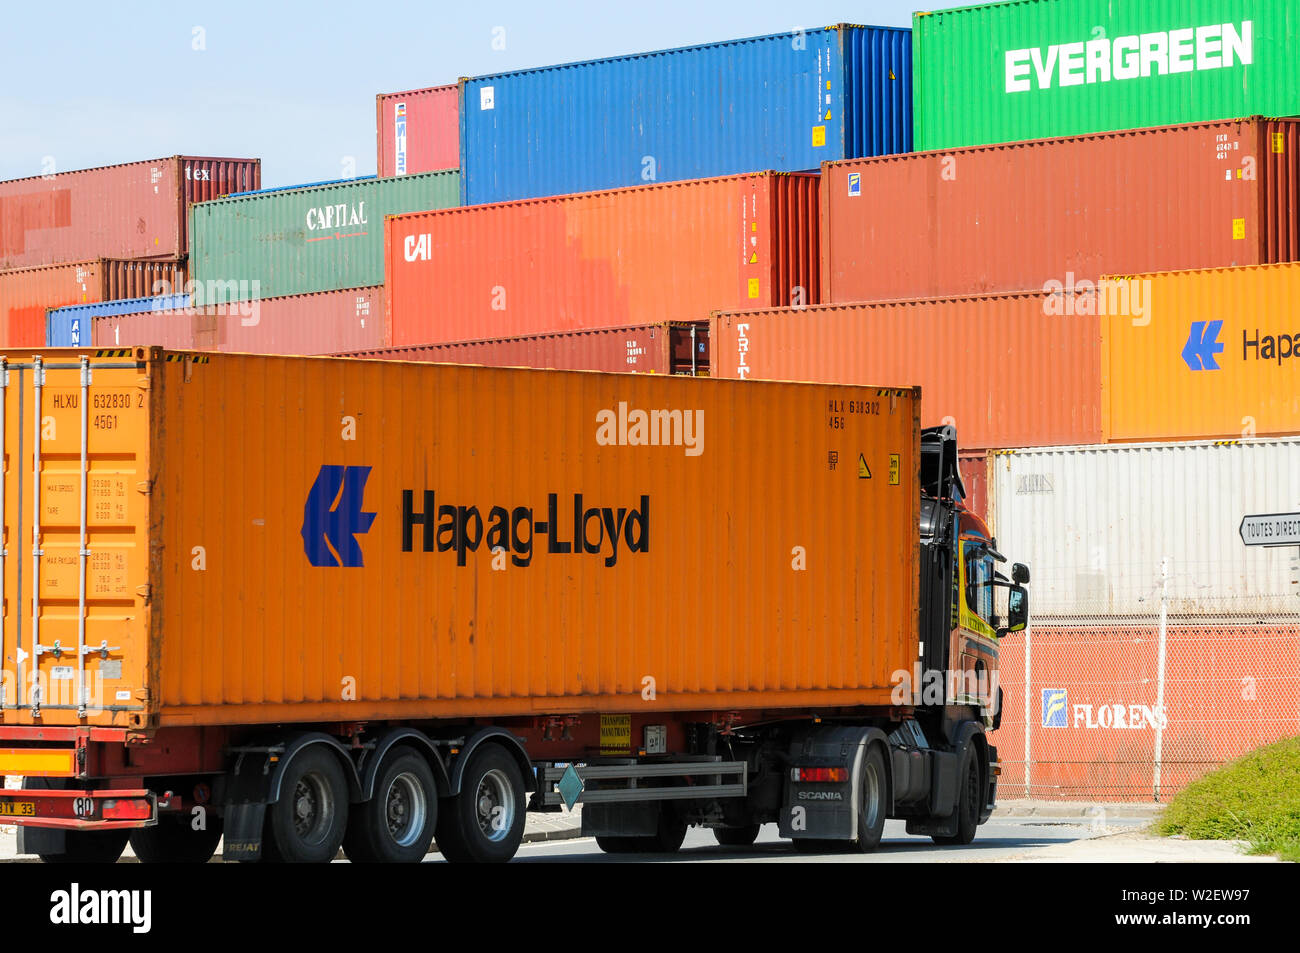 Shipping containers, Industrial harbor, Le Havre, Seine-Maritime, Normandy, France - Stock Image